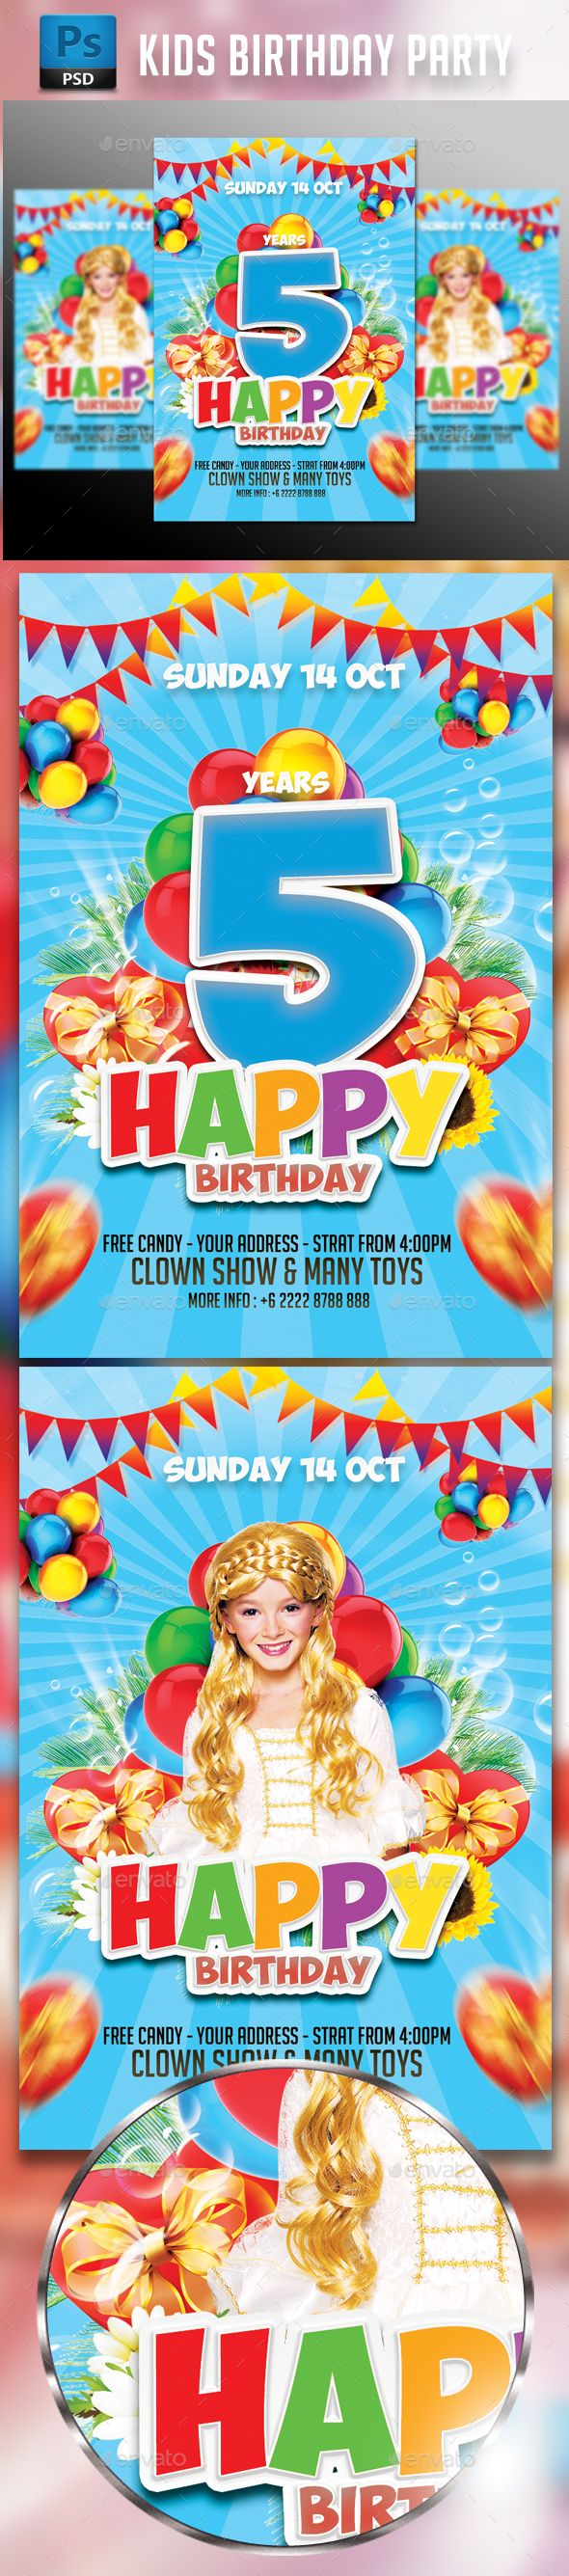 Kids Birthday Party Flyer Template  Events Flyers Flyer